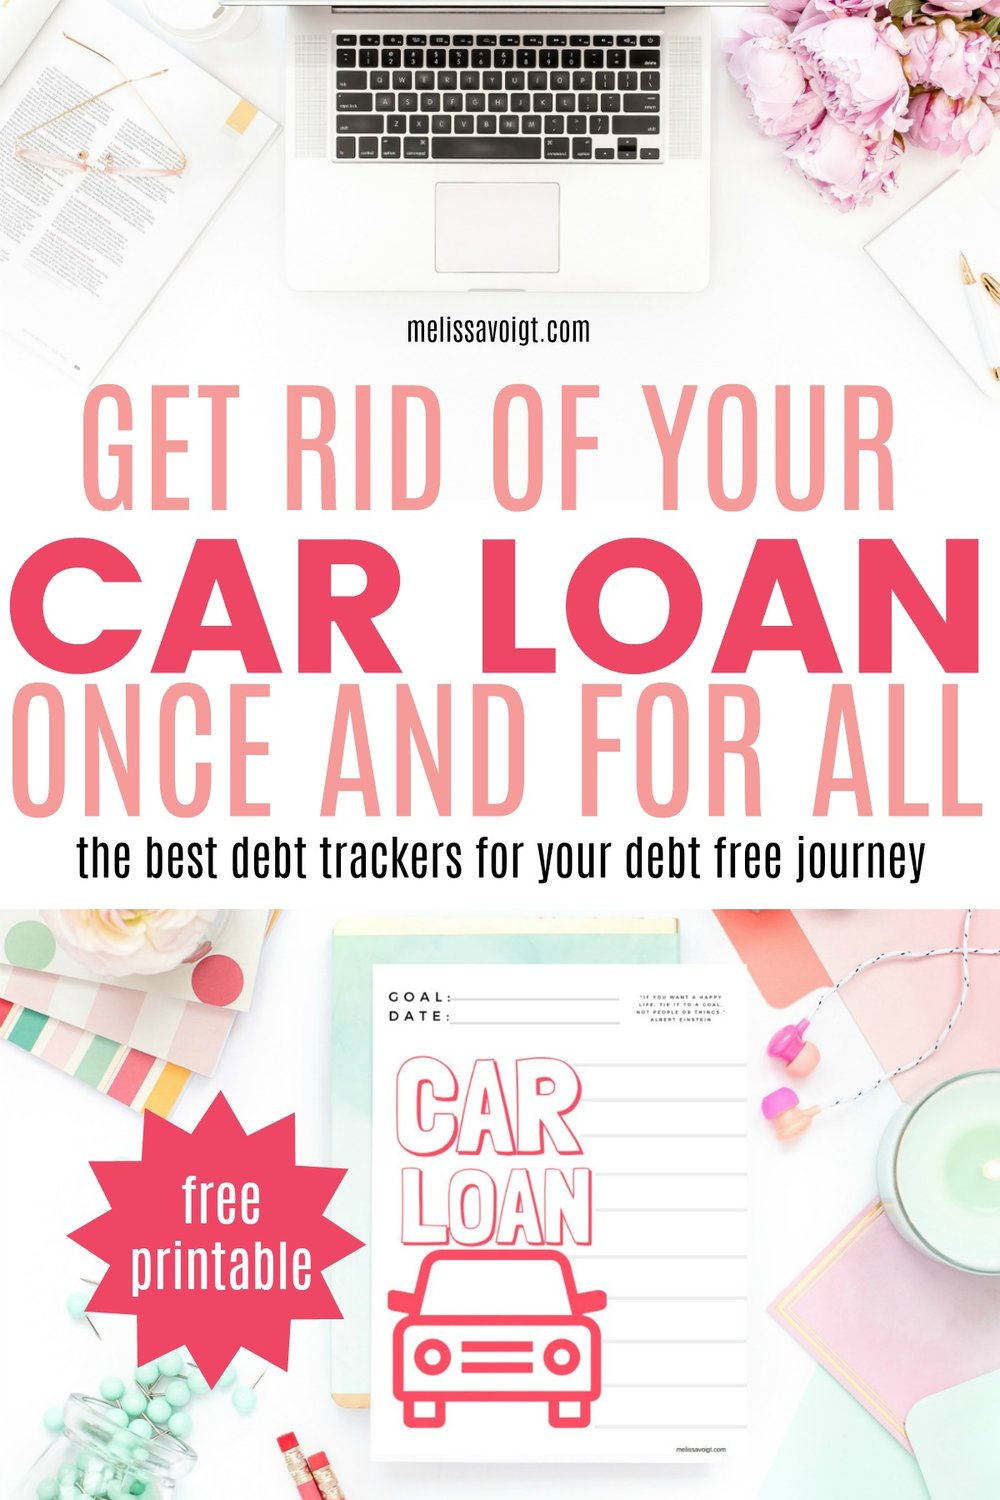 car loan debt tracker 3.jpg